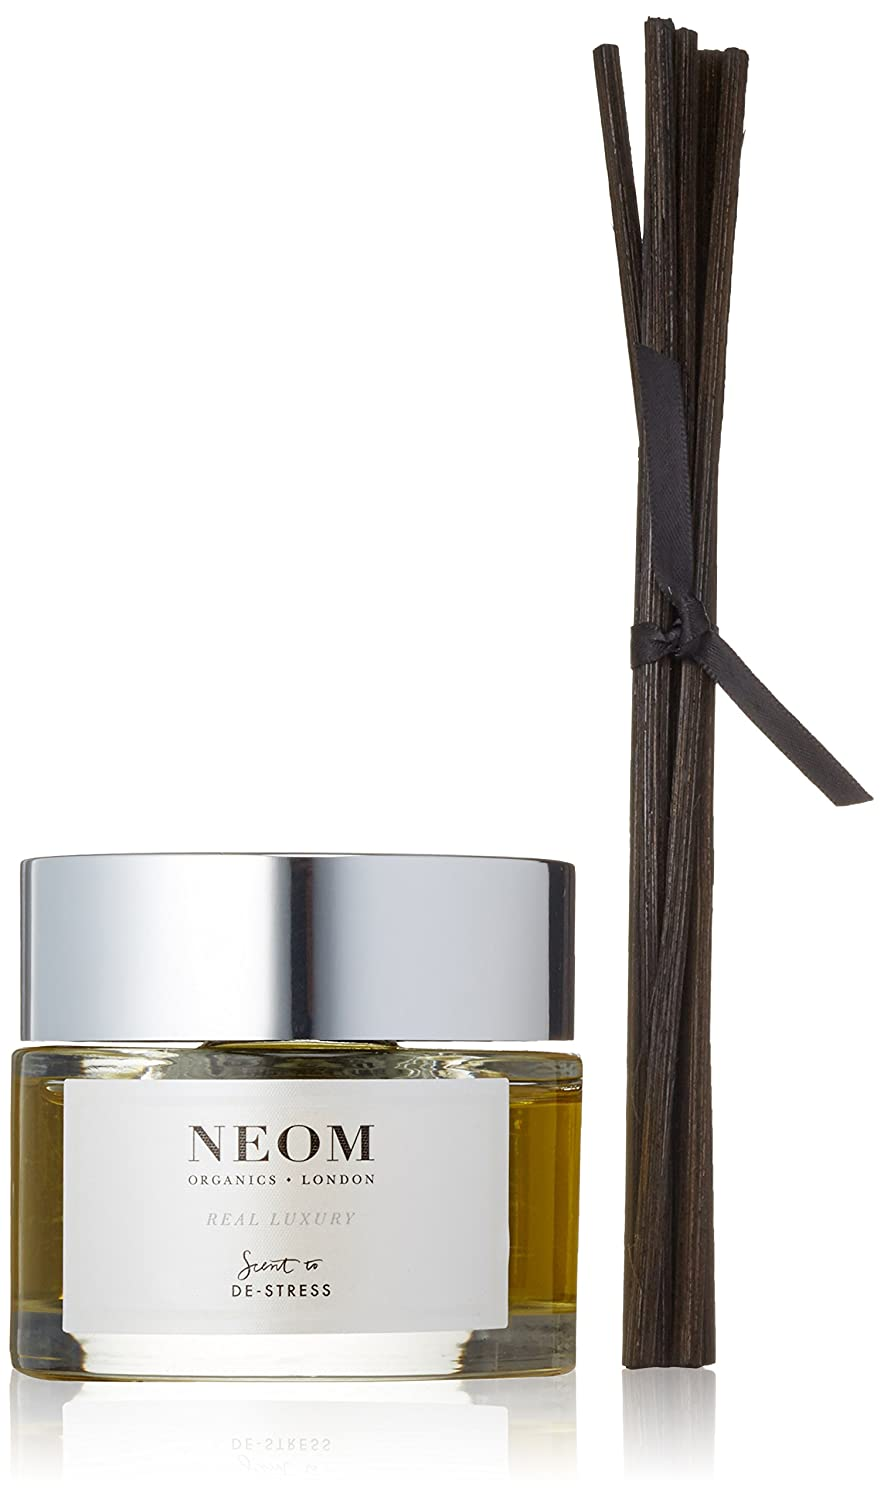 Neom Organics London Real Luxury Reed Diffuser 100 ml 1103067